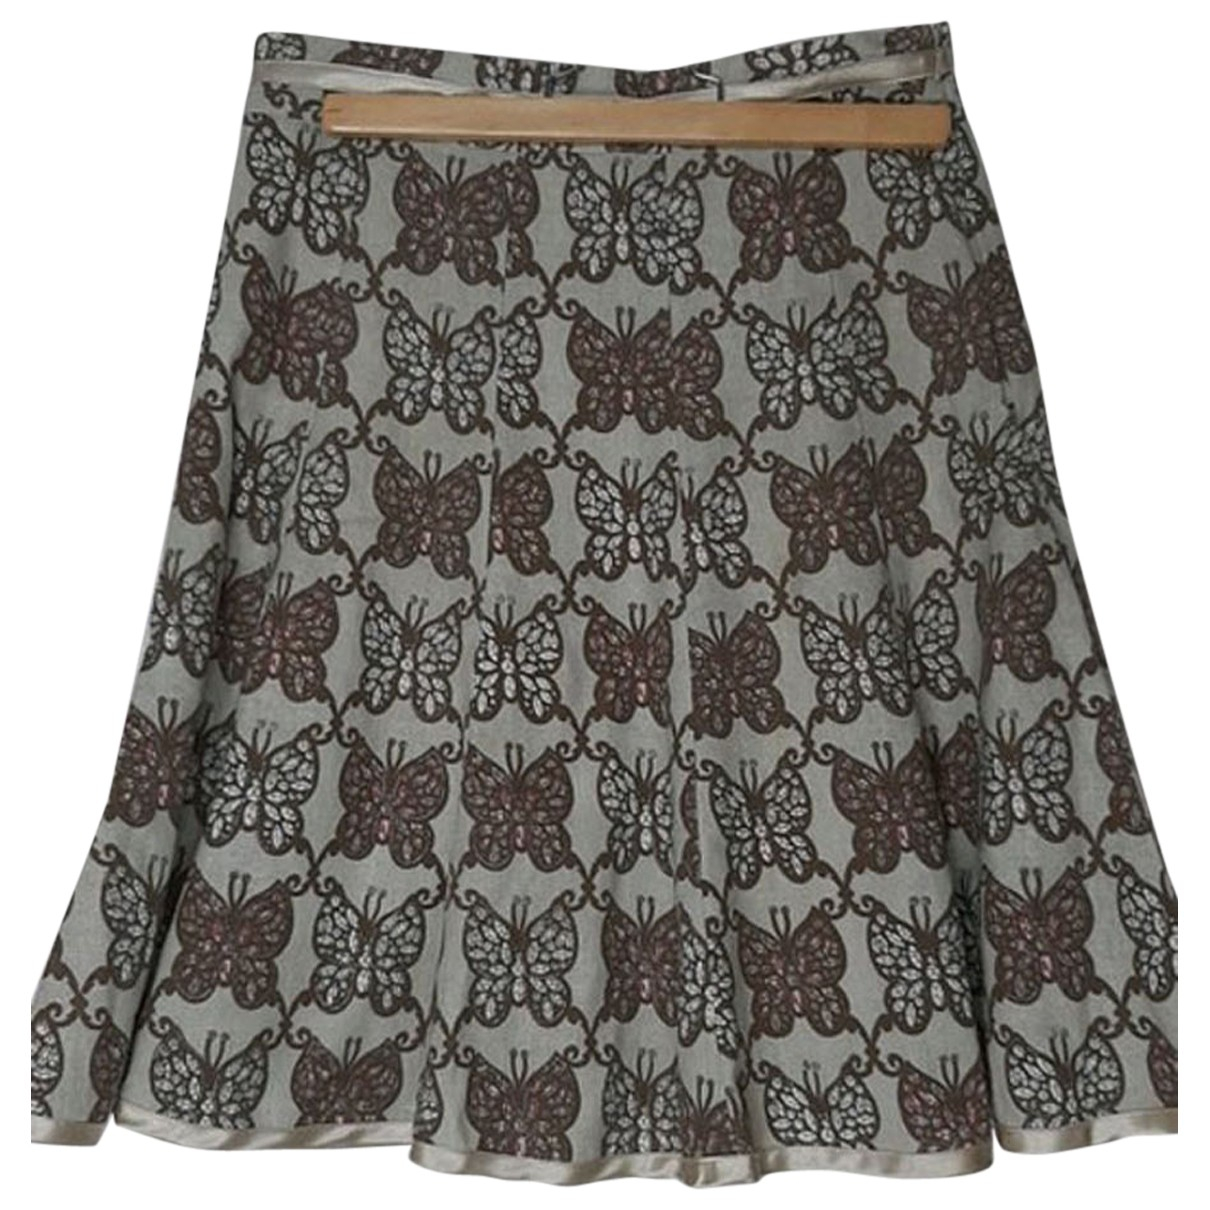 Berenice \N Grey Cotton skirt for Women 34 FR